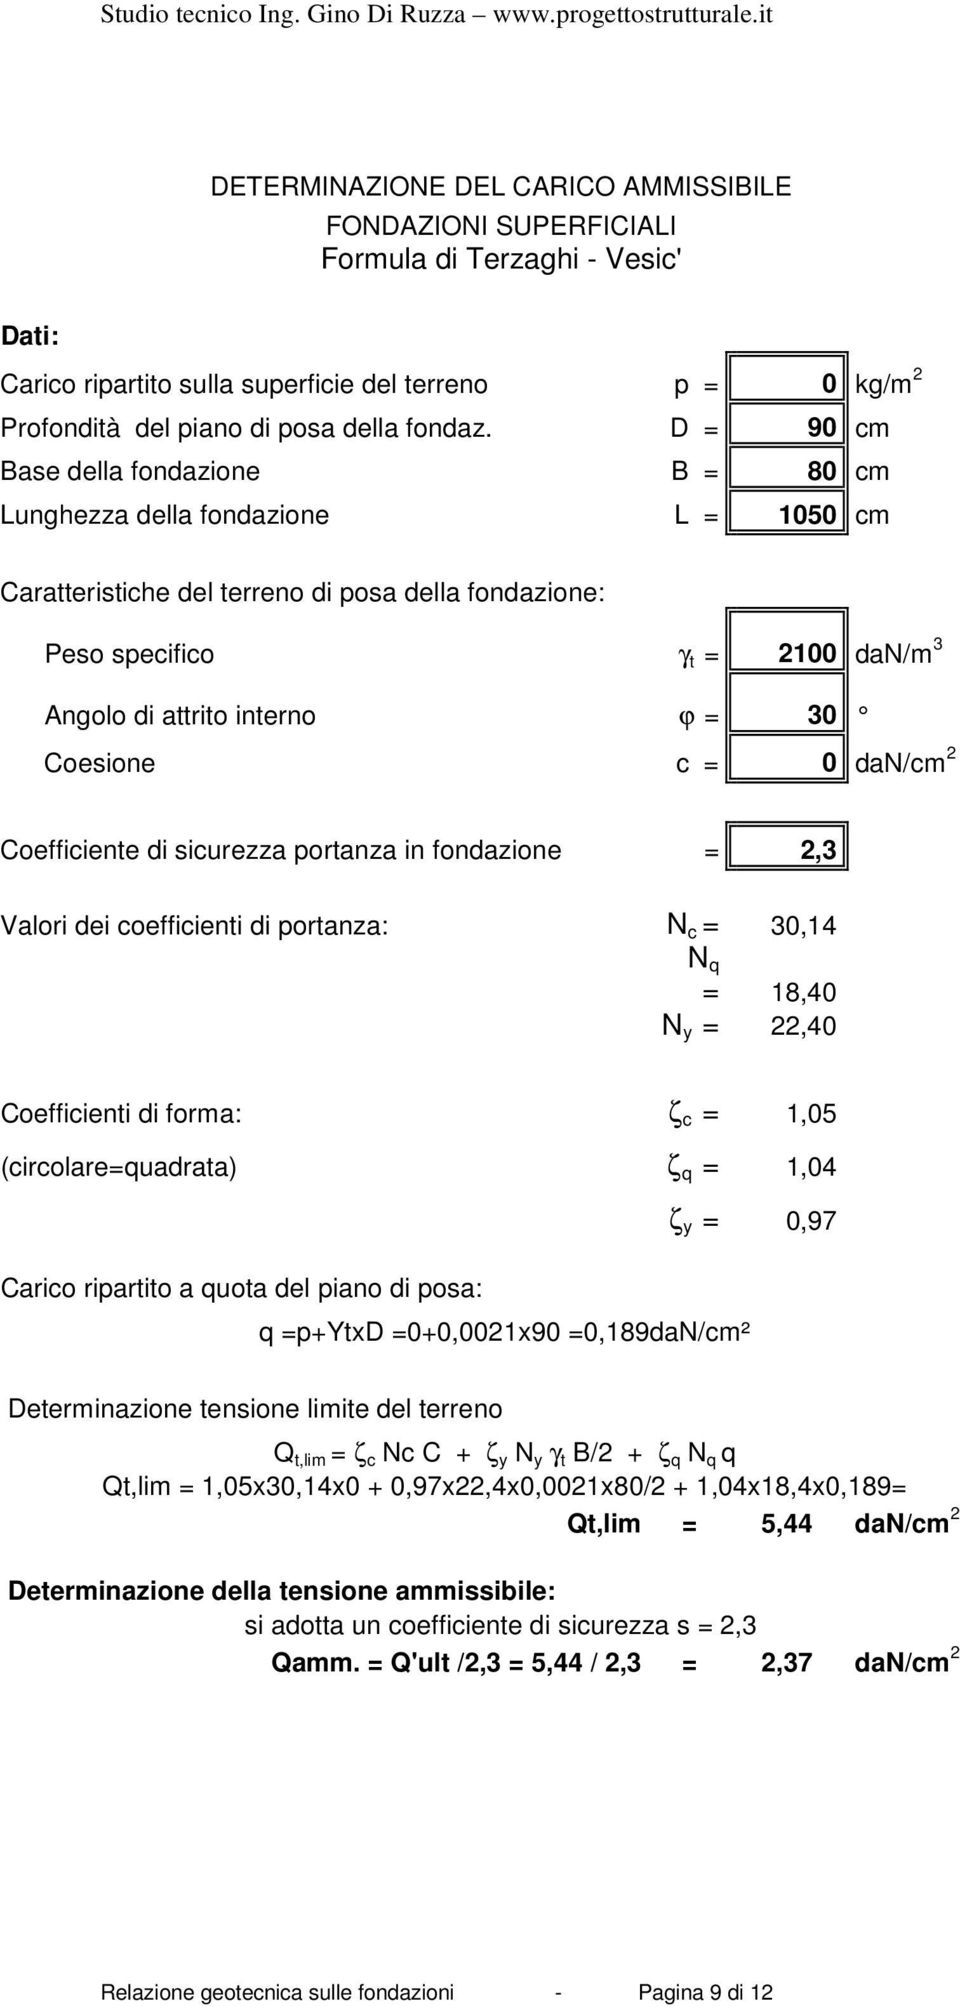 30 Coesione c = 0 dan/cm 2 Coefficiente di sicurezza portanza in fondazione = 2,3 Valori dei coefficienti di portanza: N c = 30,14 N q = 18,40 N y = 22,40 Coefficienti di forma: ζ c = 1,05